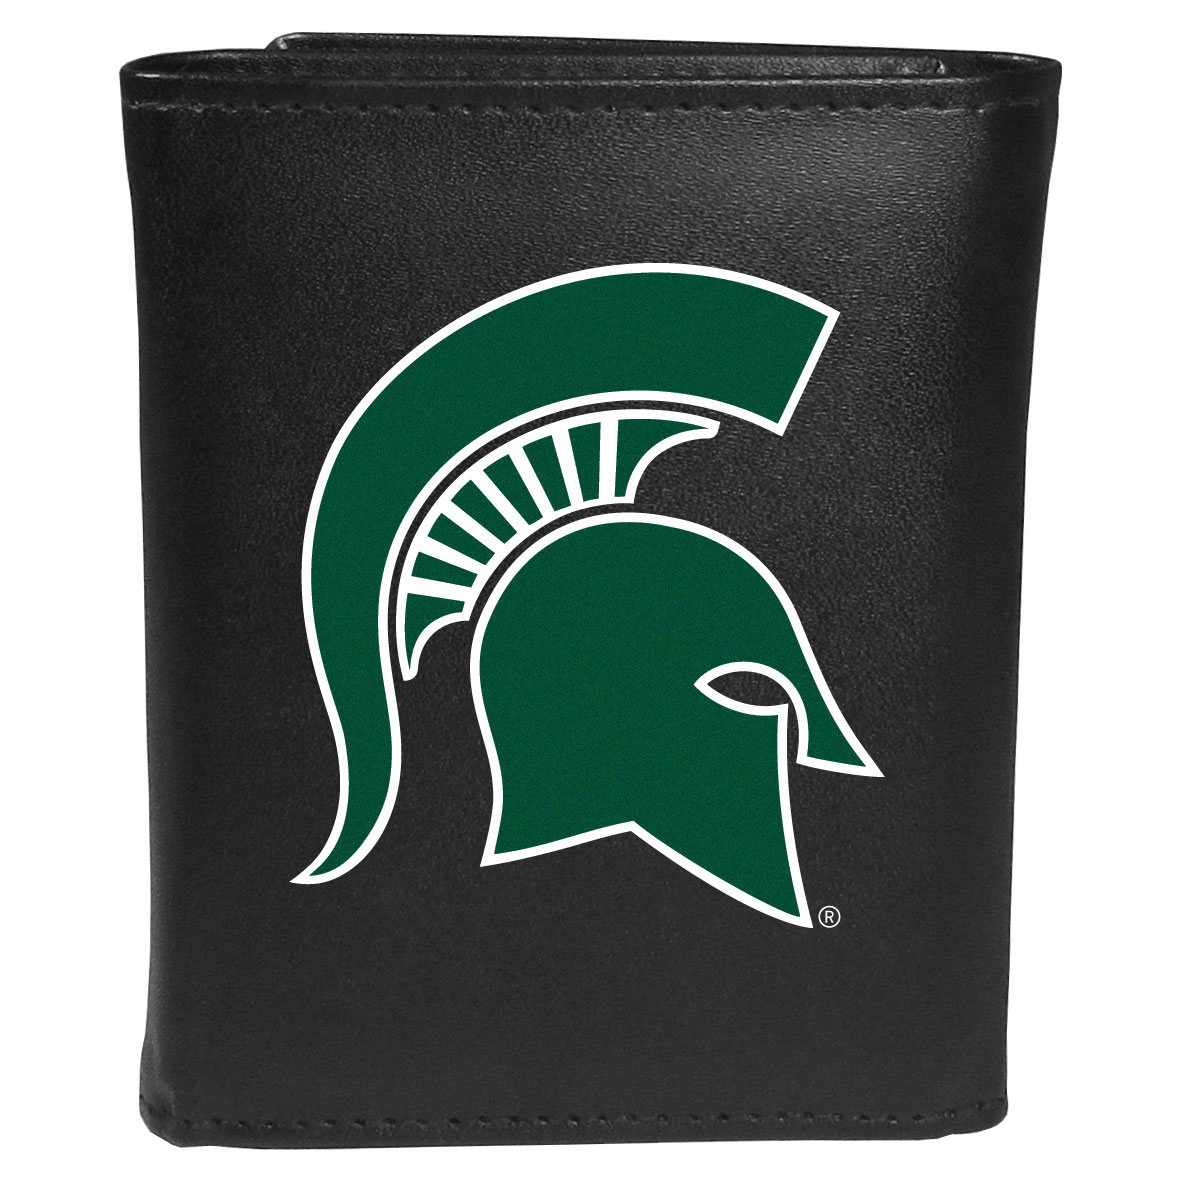 Michigan St. Spartans Leather Tri-fold Wallet, Large Logo - Our classic fine leather tri-fold wallet is meticulously crafted with genuine leather that will age beautifully so you will have a quality wallet for years to come. This is fan apparel at its finest. The wallet is packed with organizational  features; lots of credit card slots, large billfold pocket, and a window ID slot. The front of the wallet features an extra large Michigan St. Spartans printed logo.